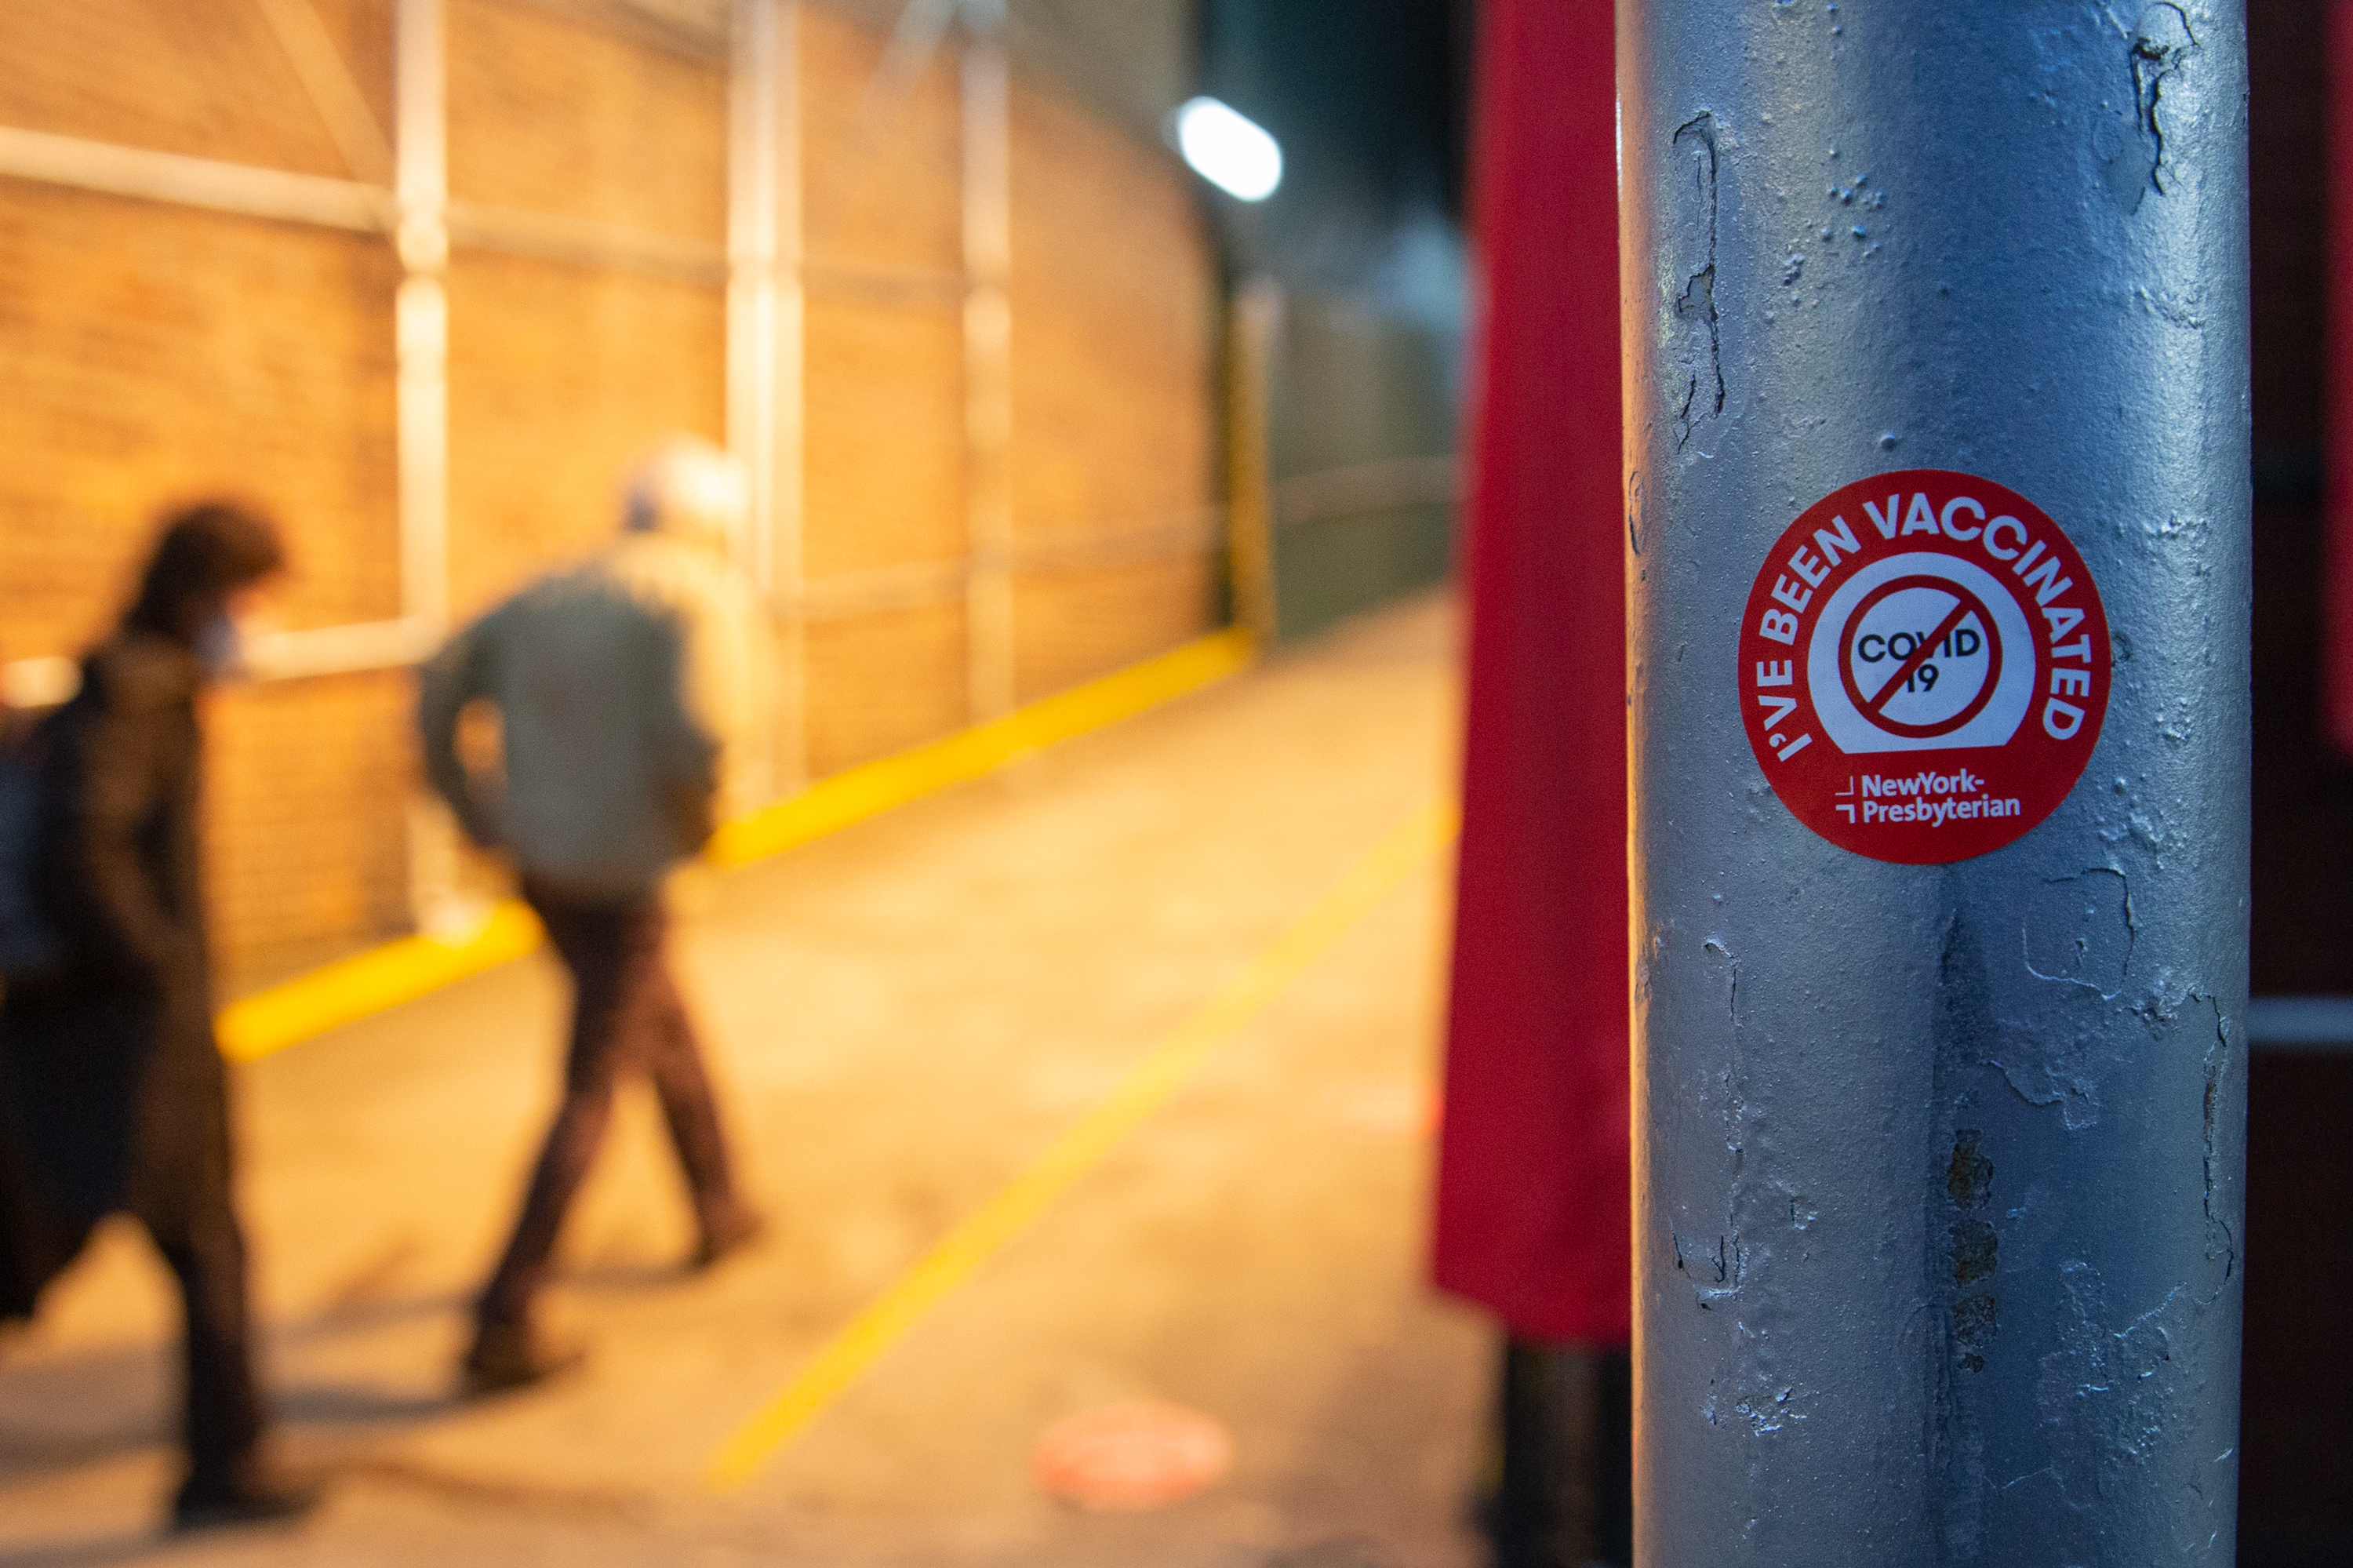 People arrive early in the morning to get their coronavirus vaccine at the Washington Heights armory, Jan. 26, 2021.